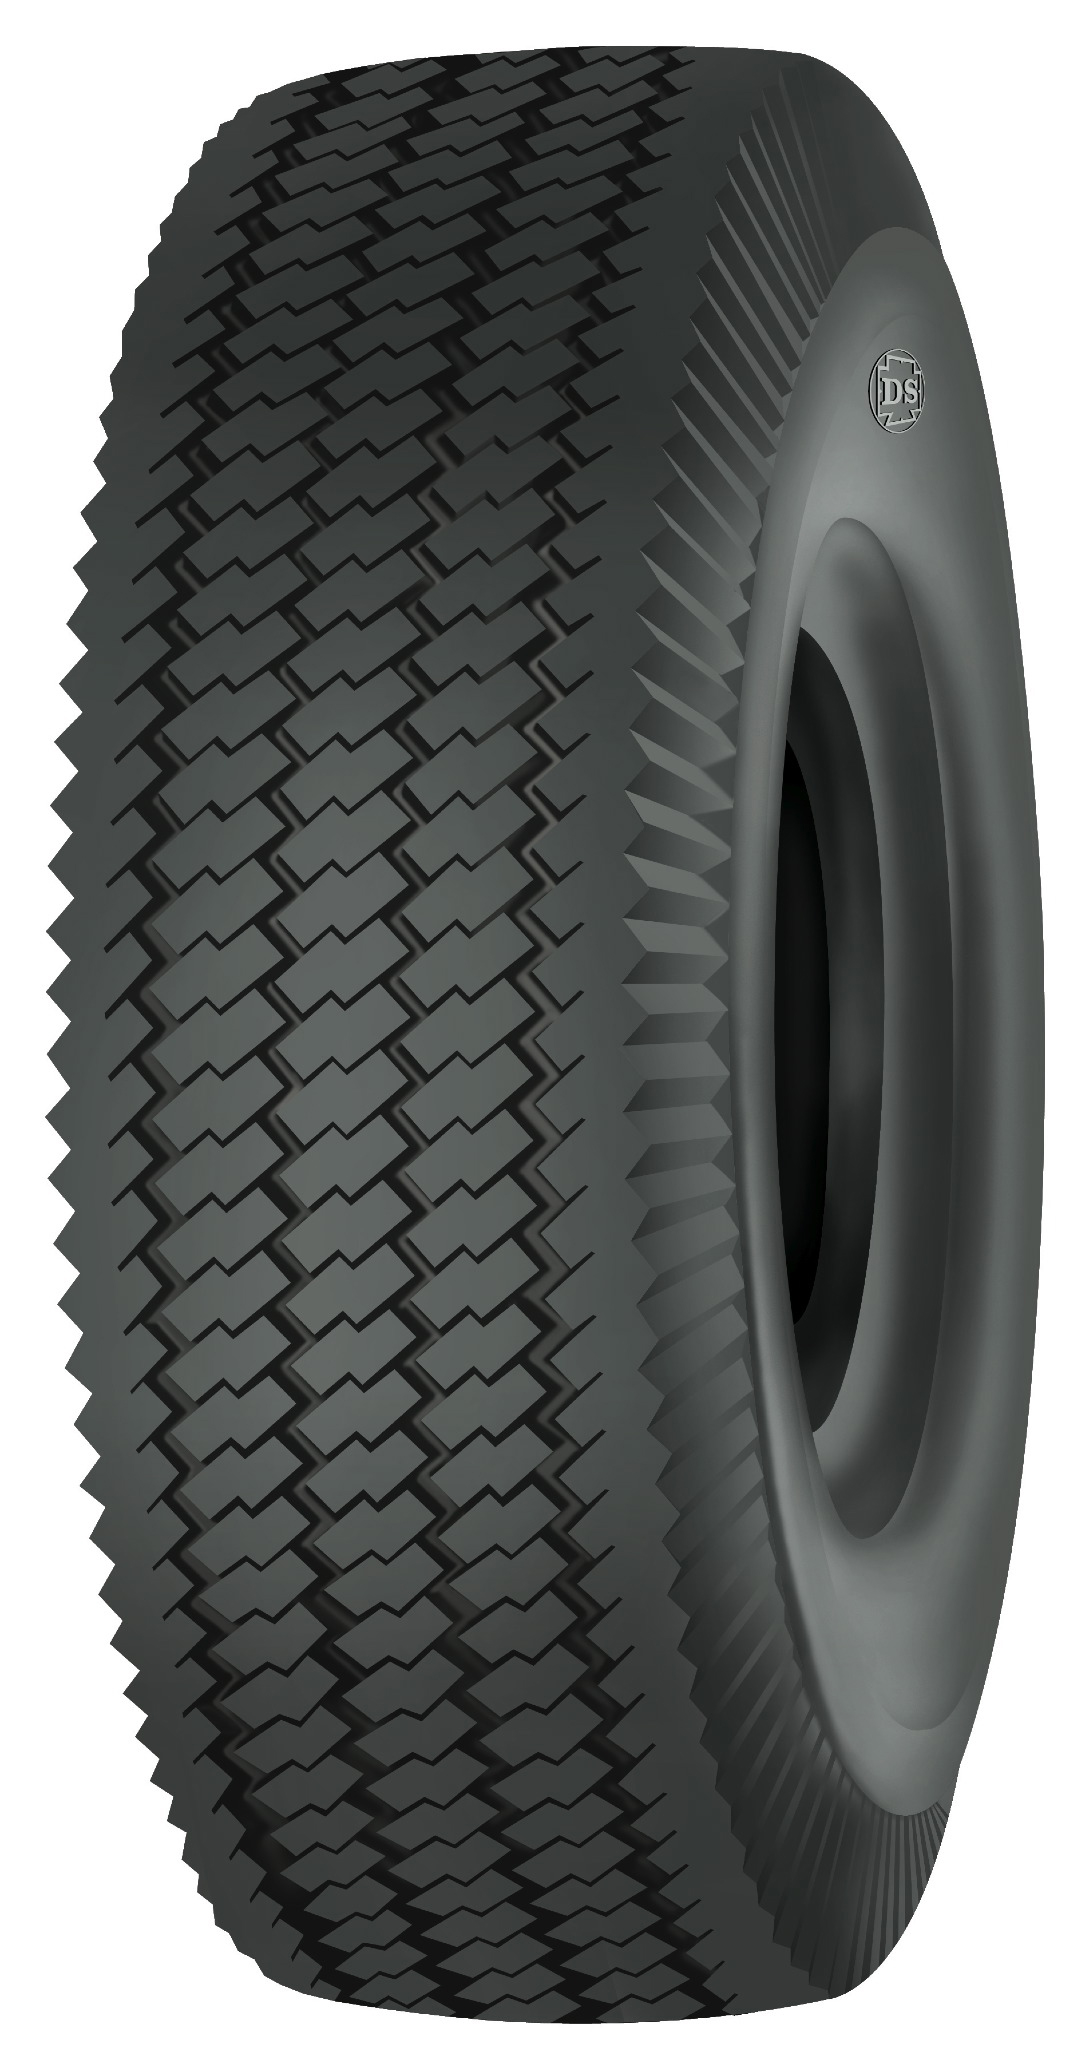 Countrywide Tire Amp Rubber Trailer Tires From D And J Tire